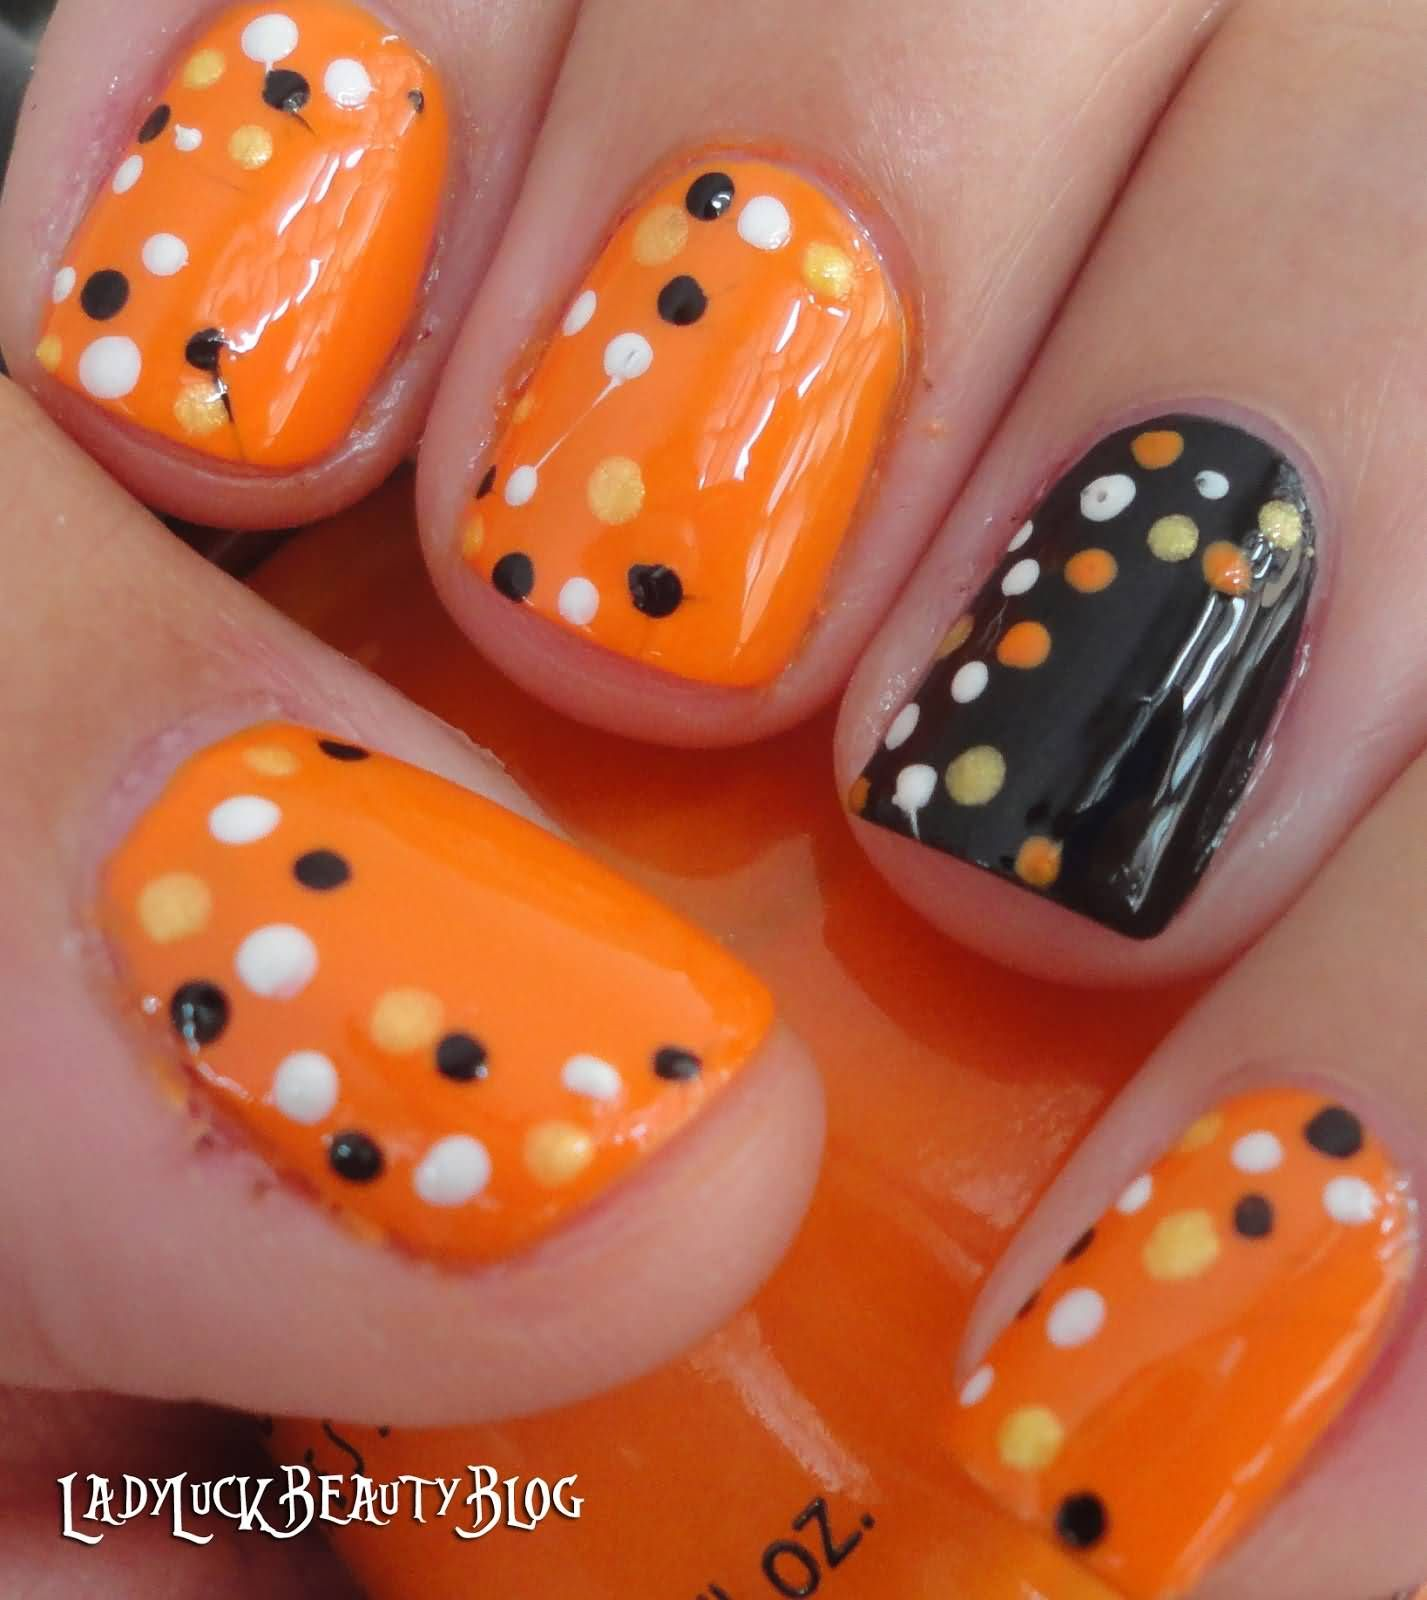 Orange base nails with white black and yellow dots design nail art orange base nails with white black and yellow dots design nail art prinsesfo Gallery